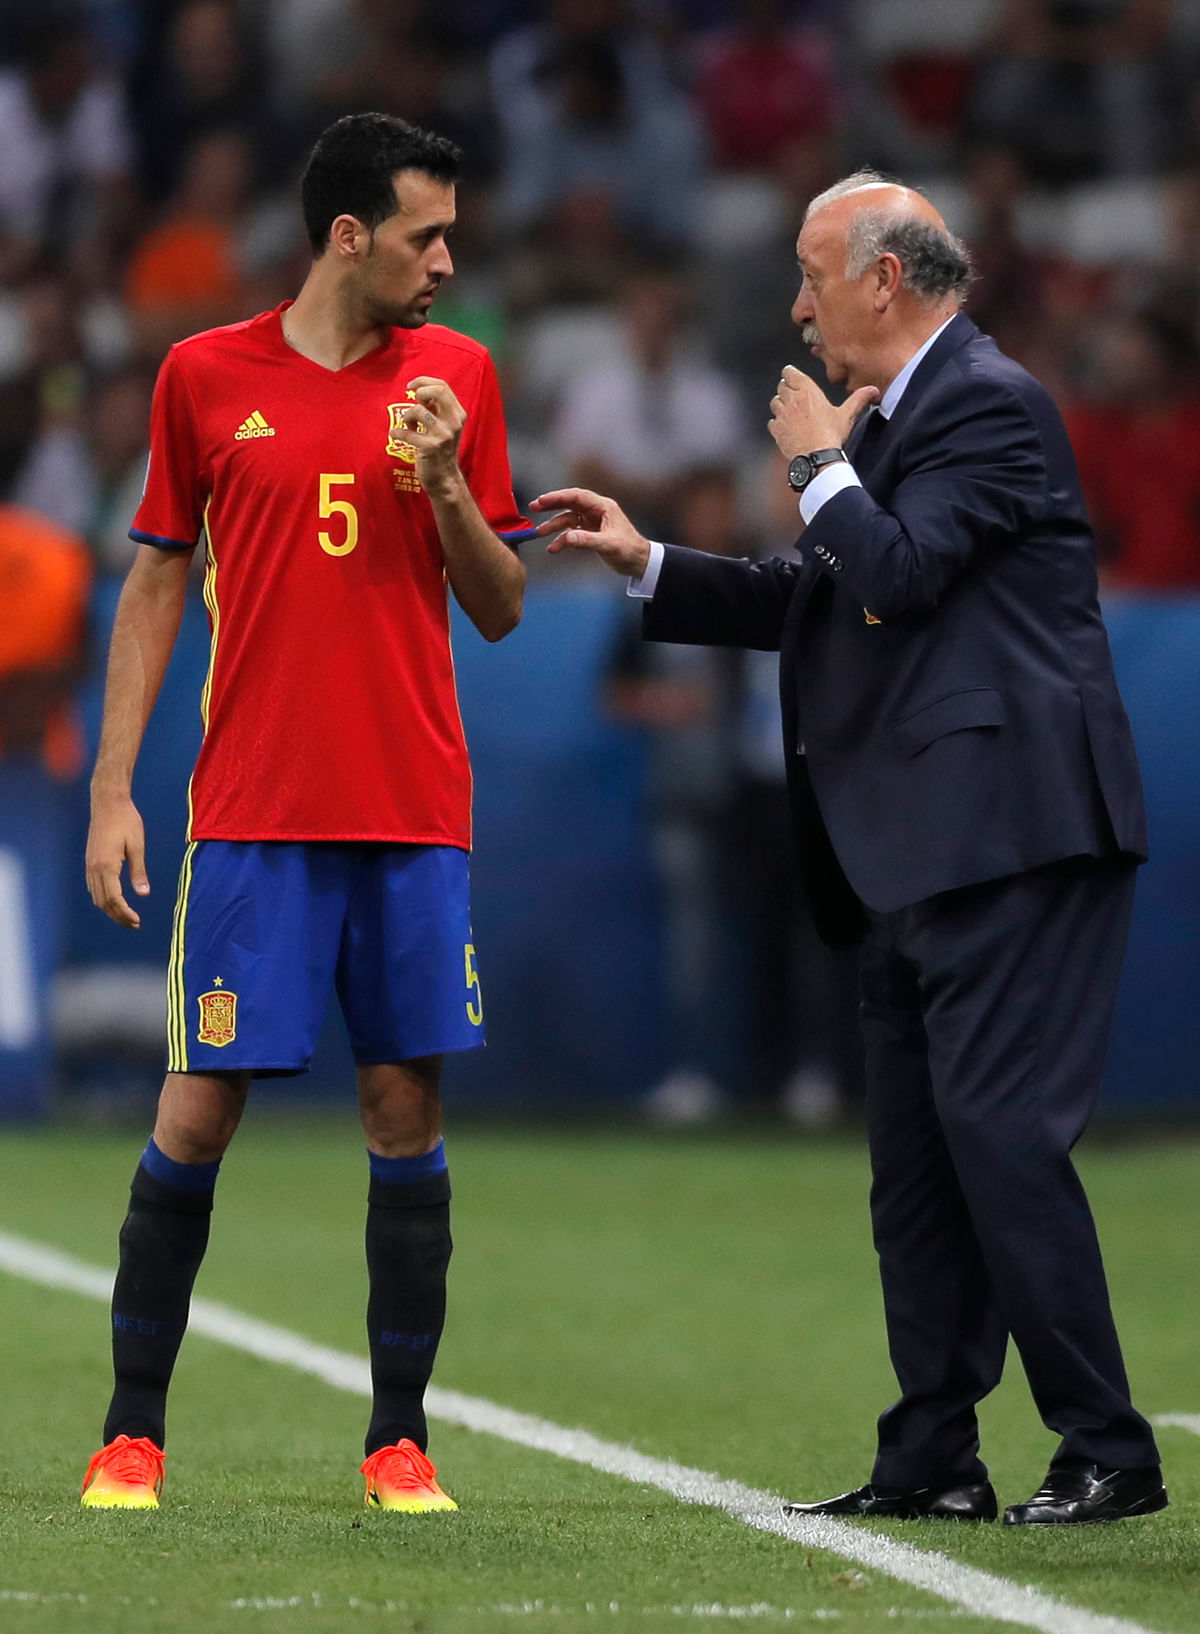 Spain coach Vicente del Bosque talks to Spain's Sergio Busquets during the Euro 2016. (Photo: AP)